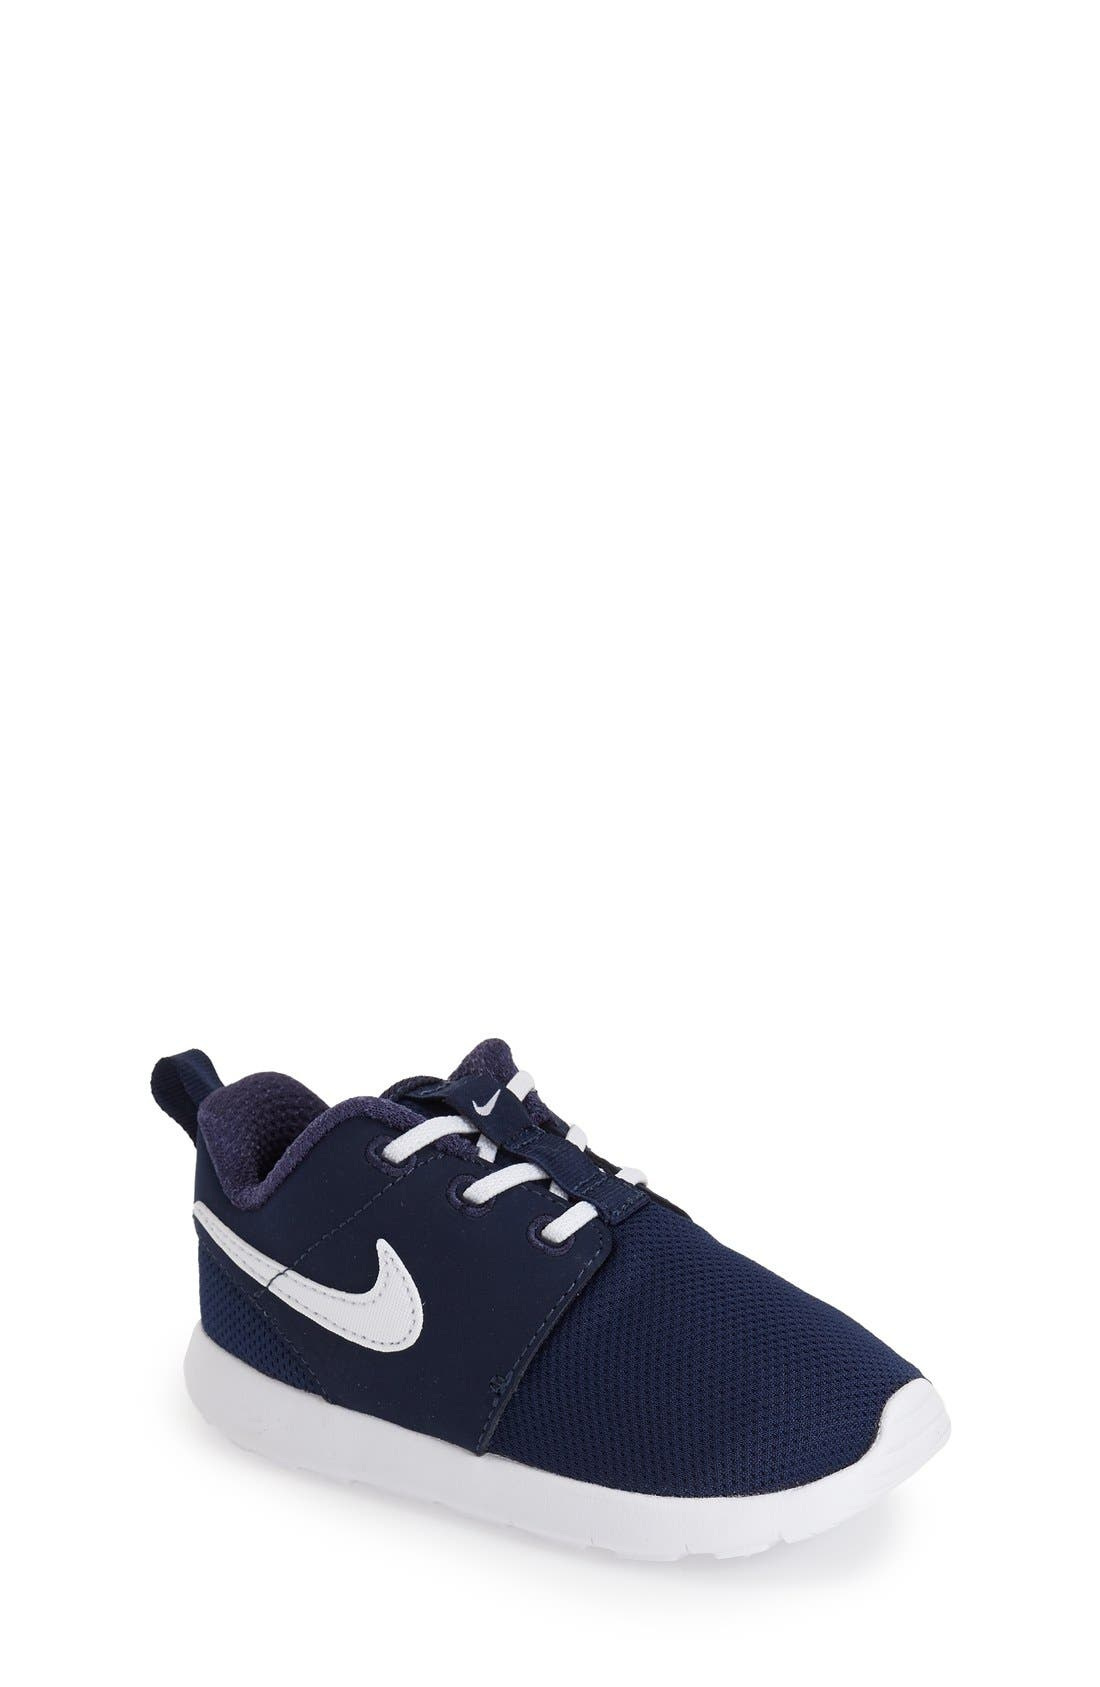 Nike Shoes for Kids | Nordstrom